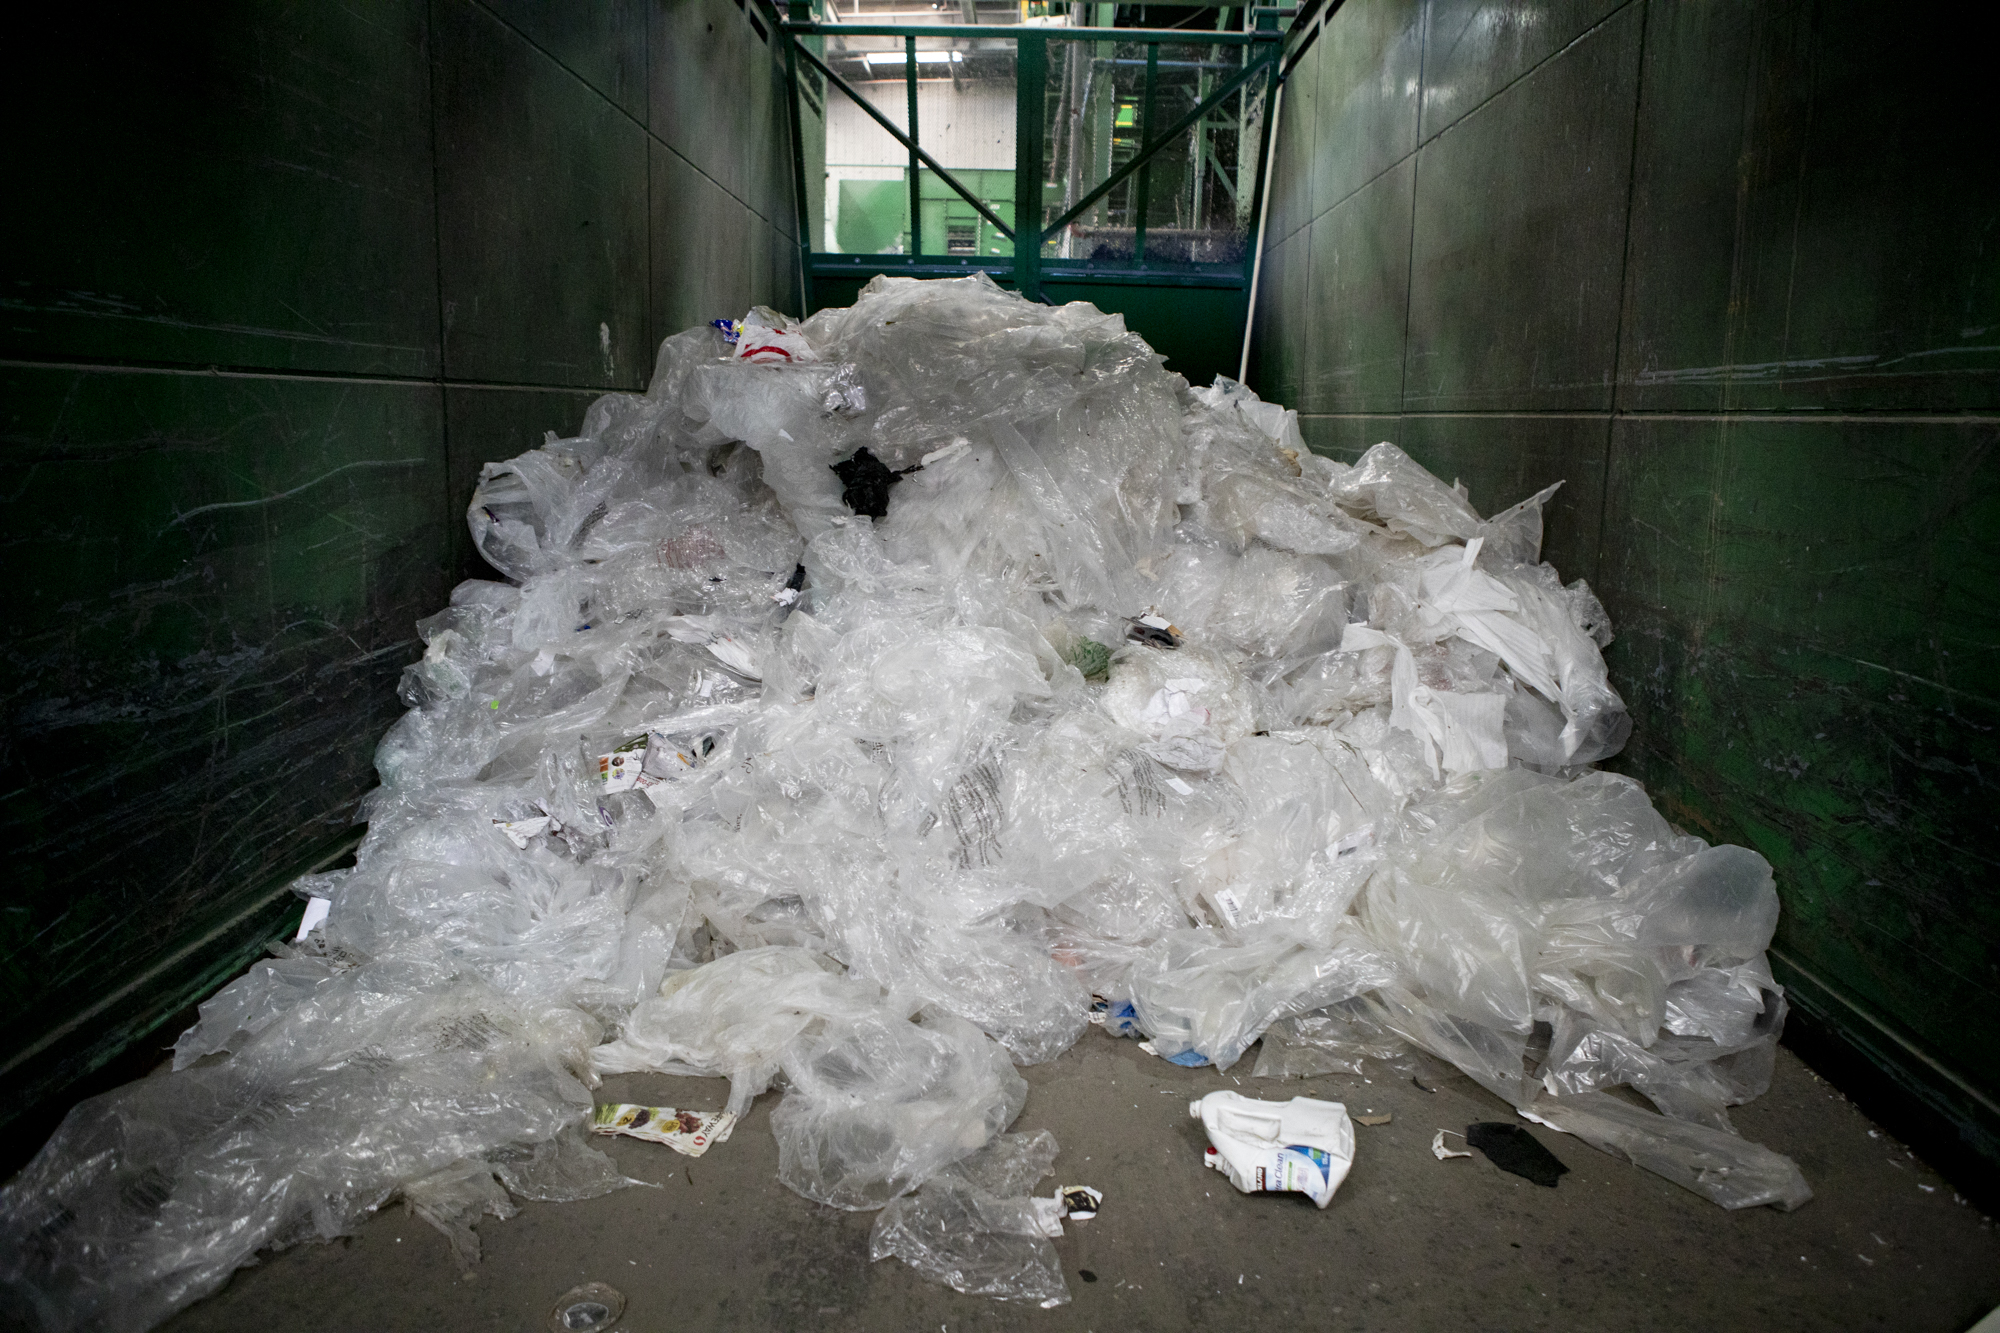 A pile of plastic bags at Greenwaste recycling facility in San Jose on July 29, 2019. Photo by Anne Wernikoff for CalMatters.